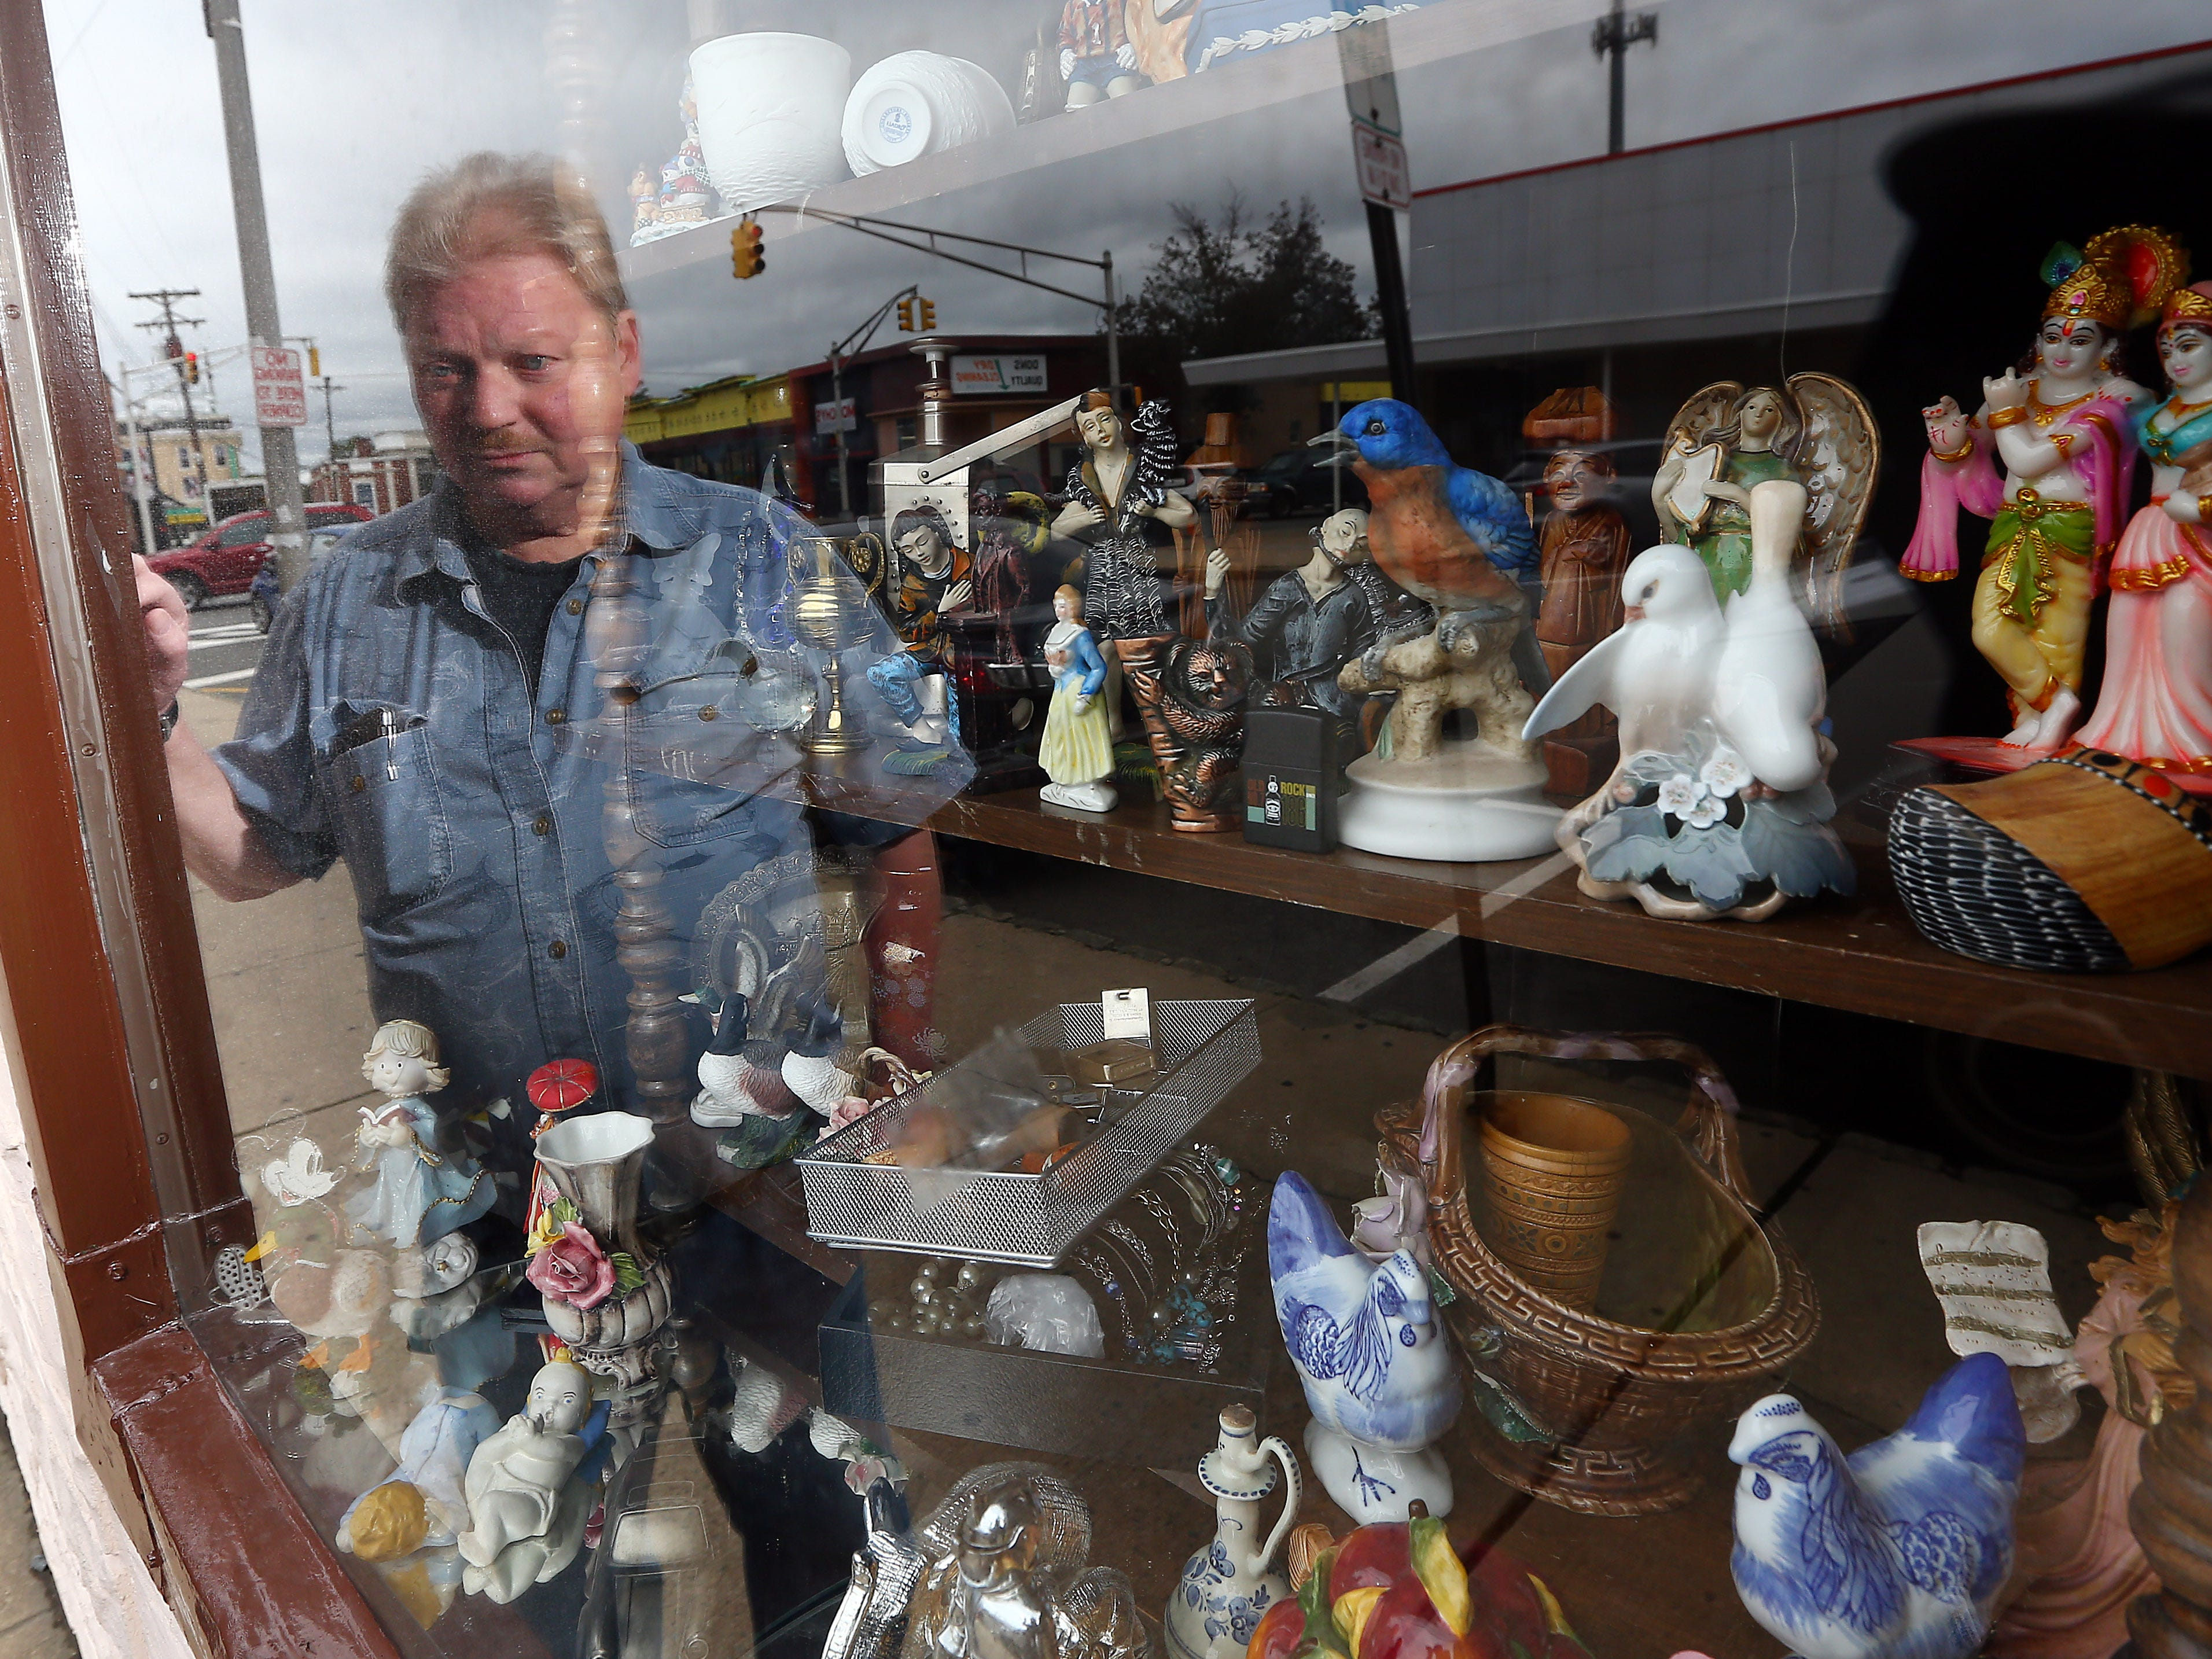 Stan Bush is reflected in the storefront window of his Morris Thrift Store in Dover. The store has been open for 40 years and will close at the end of the year. Stan and Maria Bush, the most recent owners are retiring and have sold it, the new owner will not keep it as a thrift store. September 28, 2018, Dover, NJ